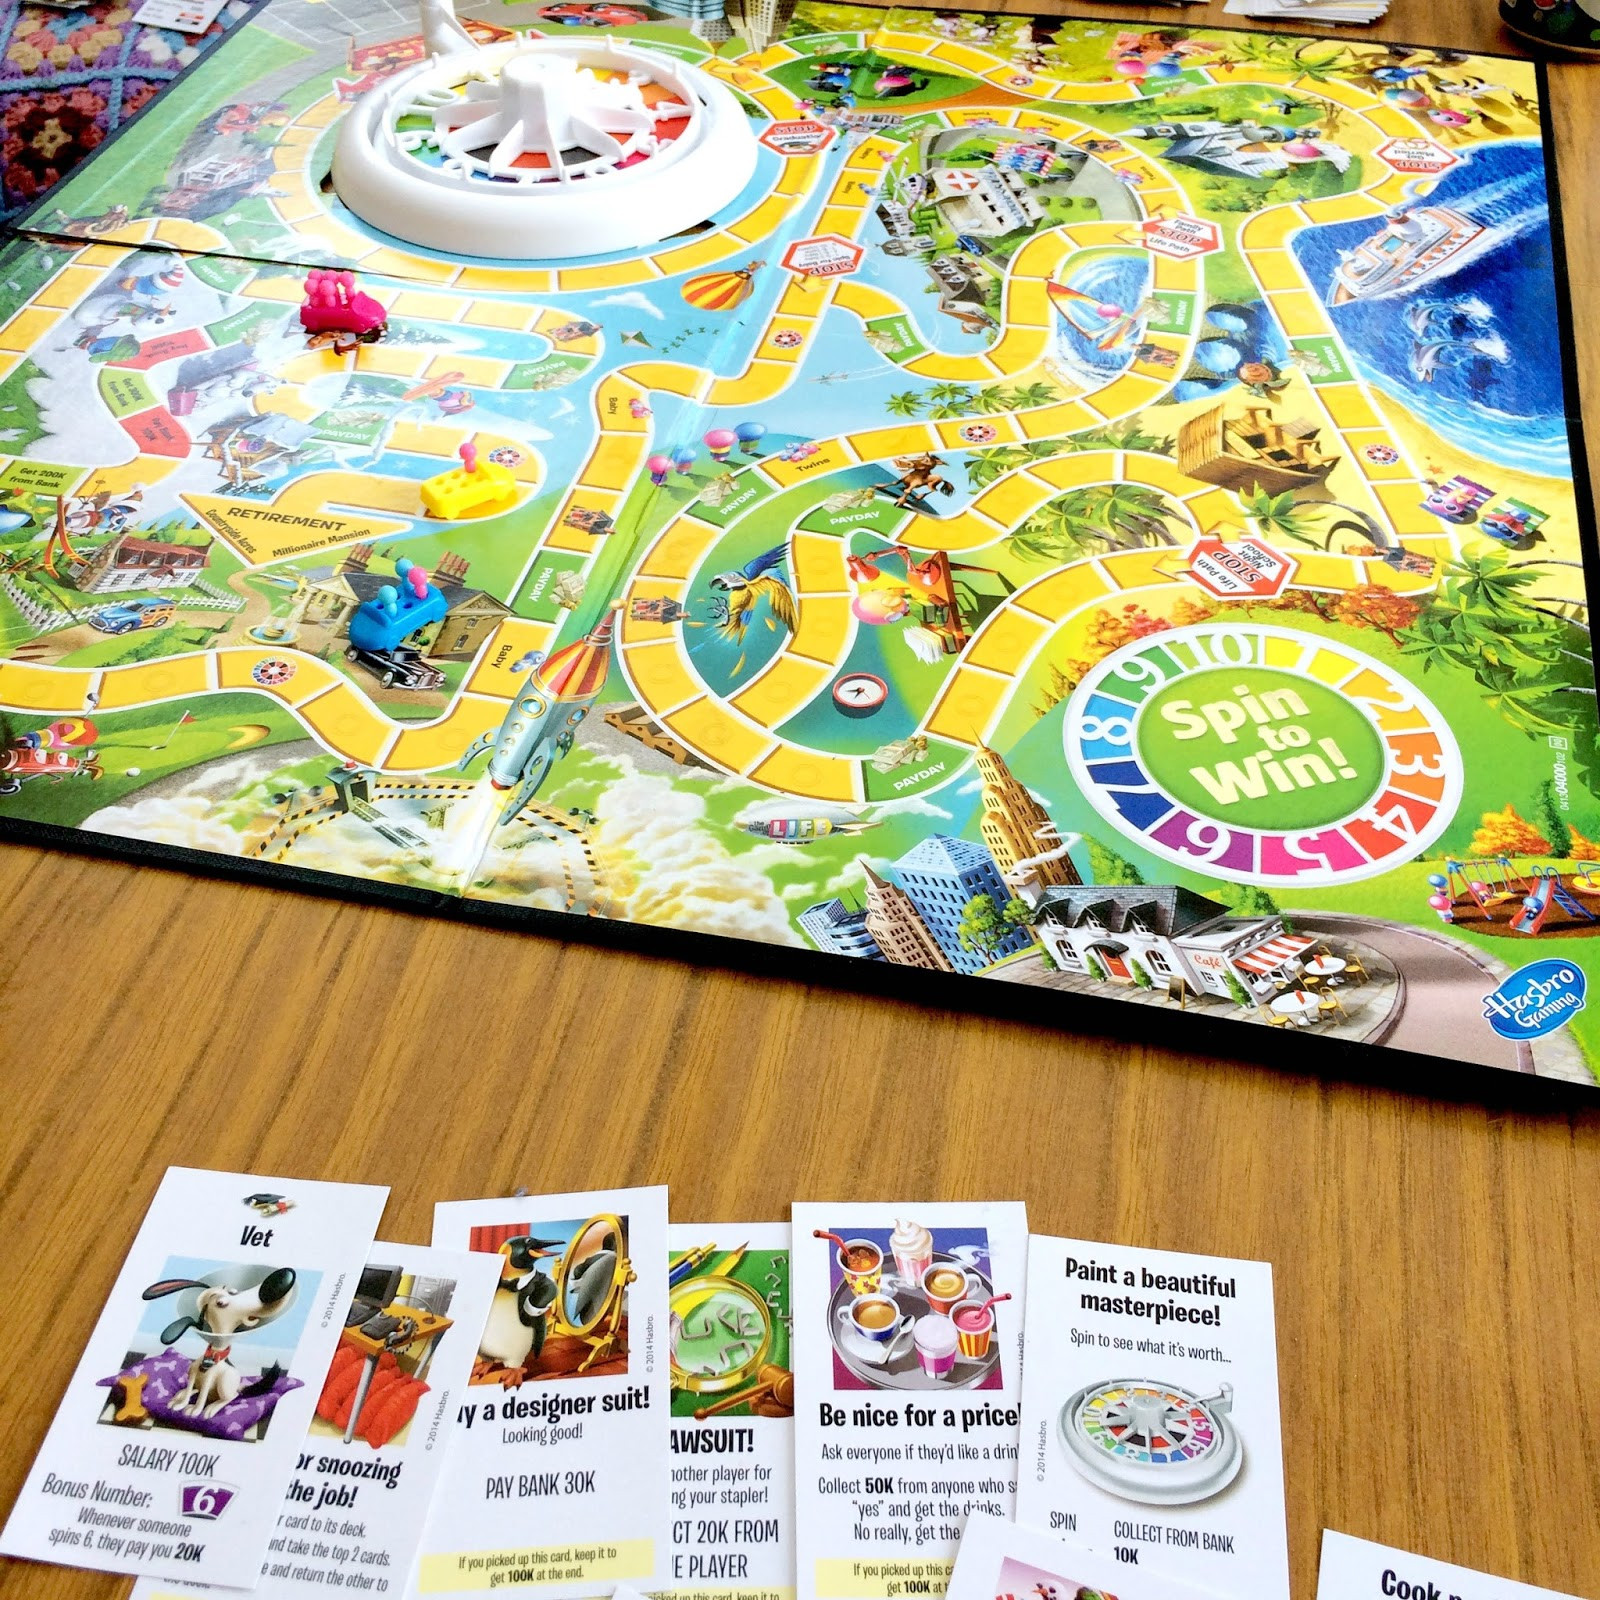 Family Board Games Awesome the Syders Family Board Games Night Of Great 44 Ideas Family Board Games